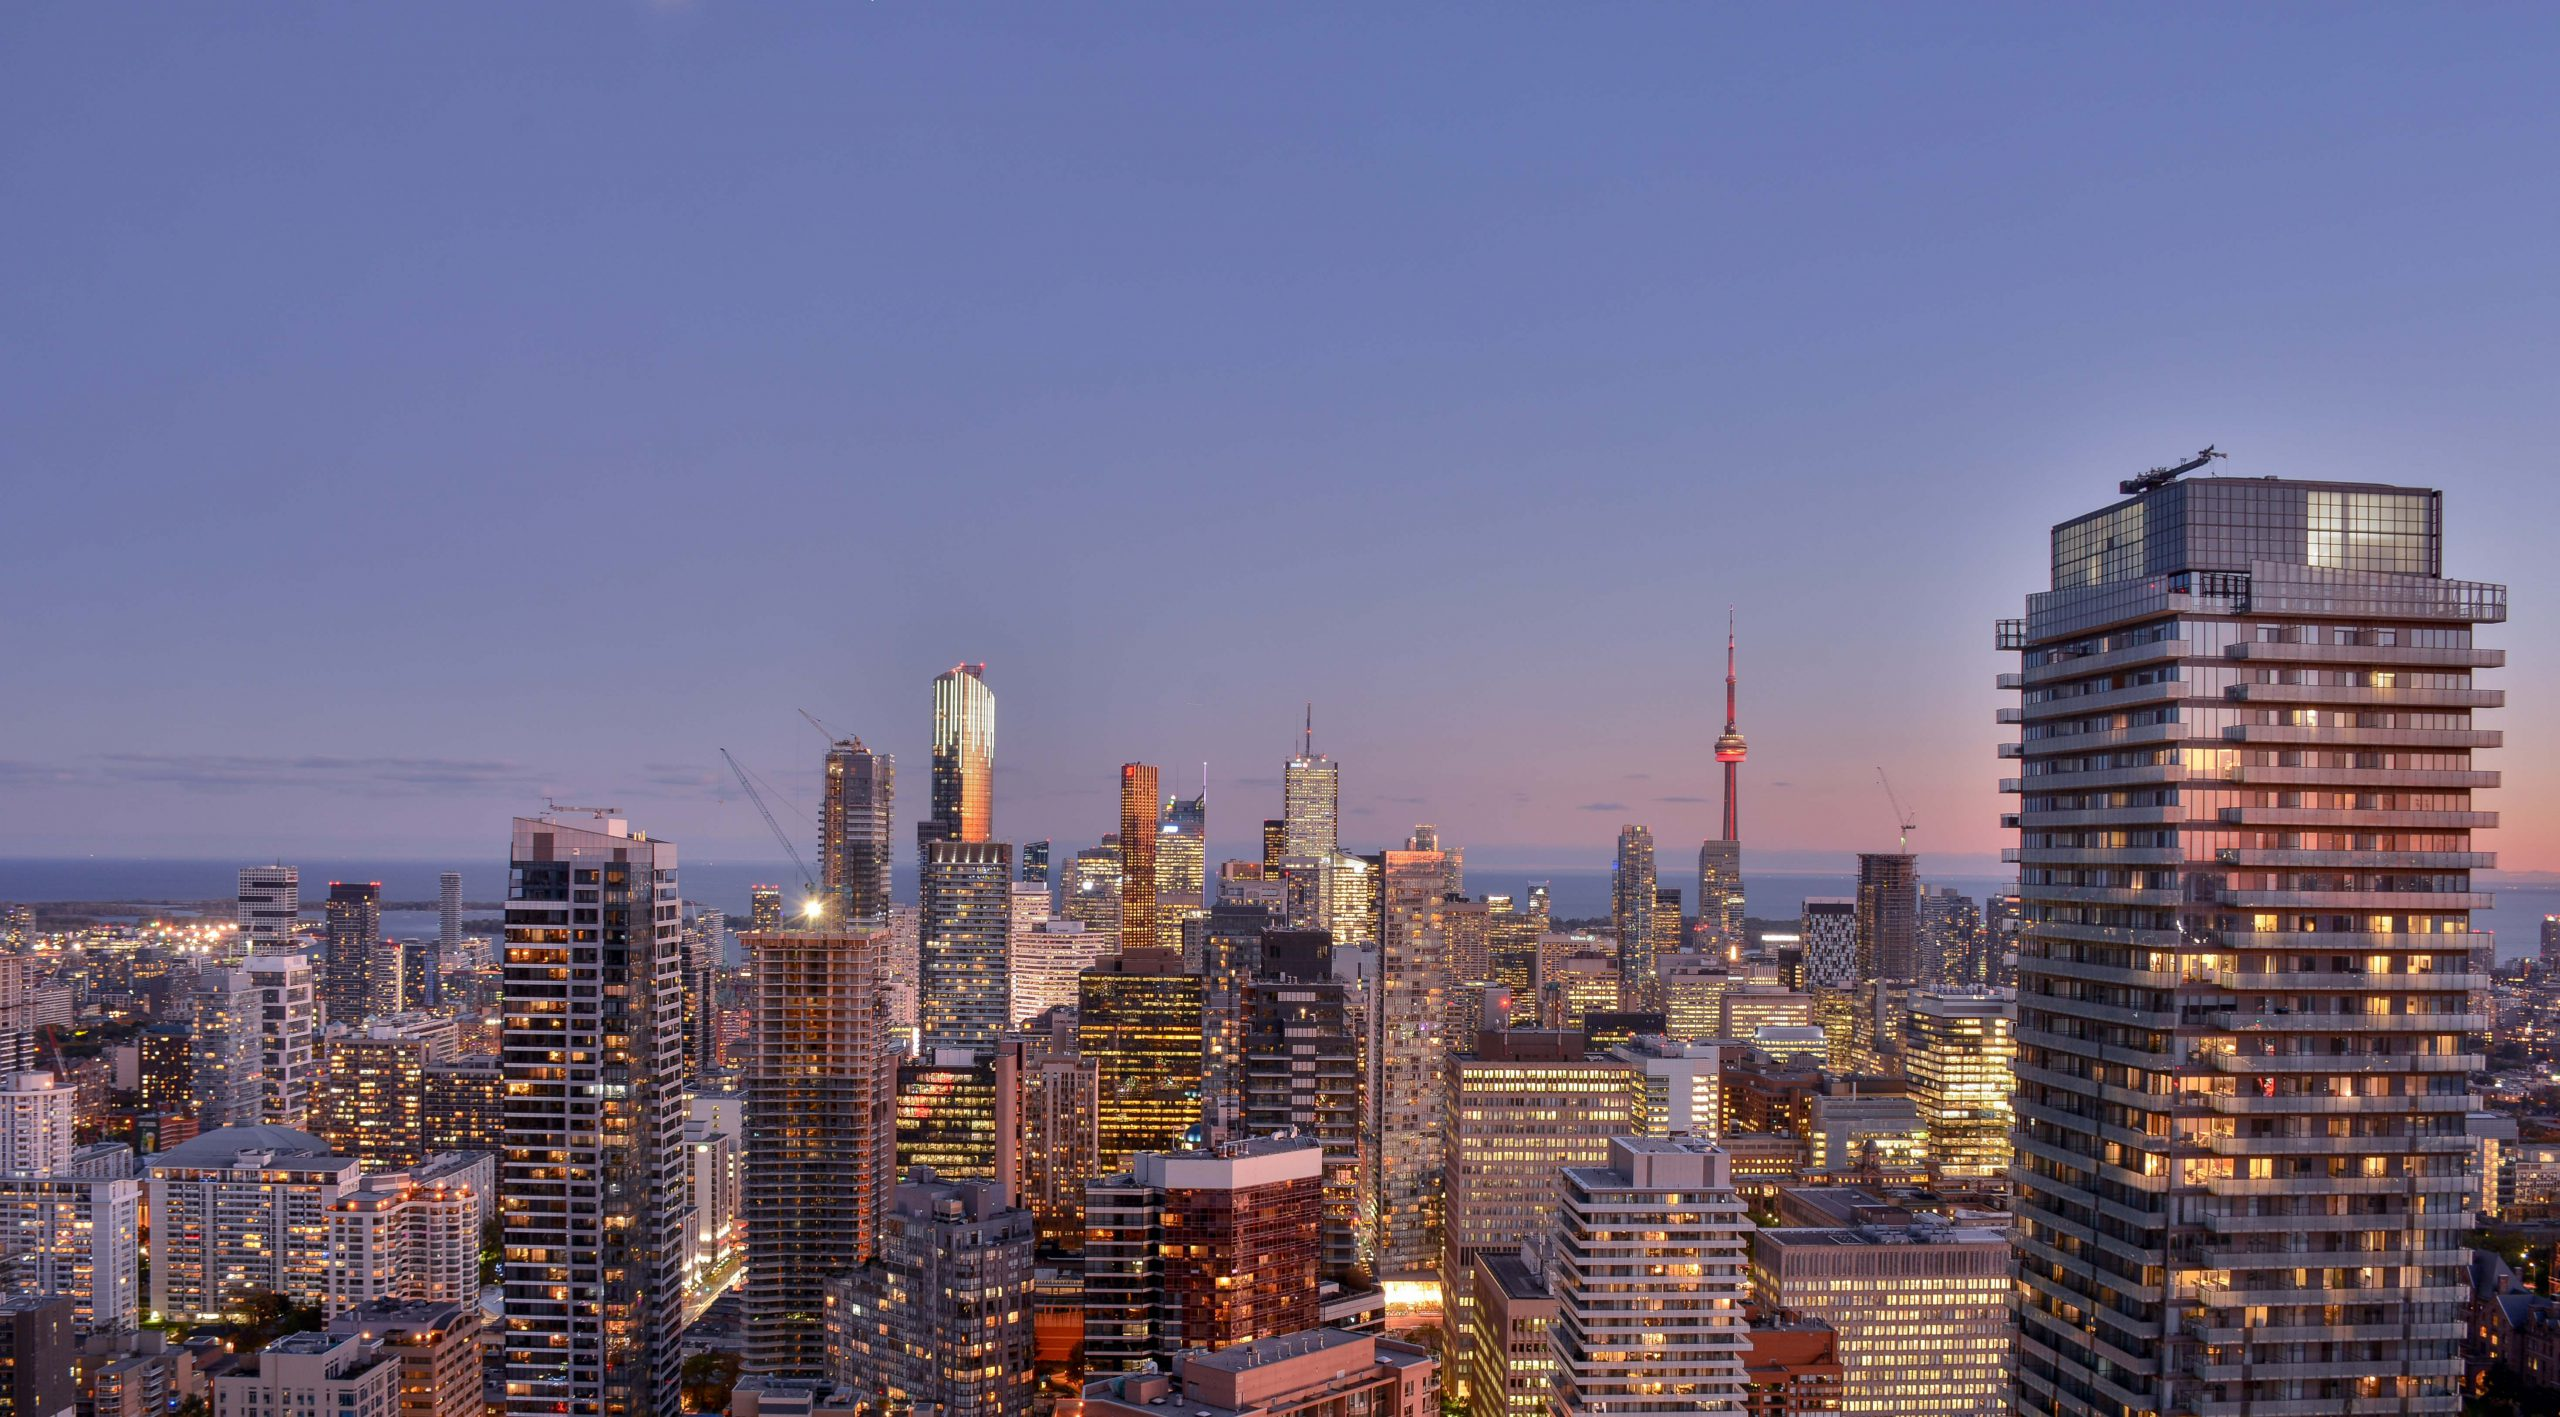 toronto skyline at sunset from the manulife building